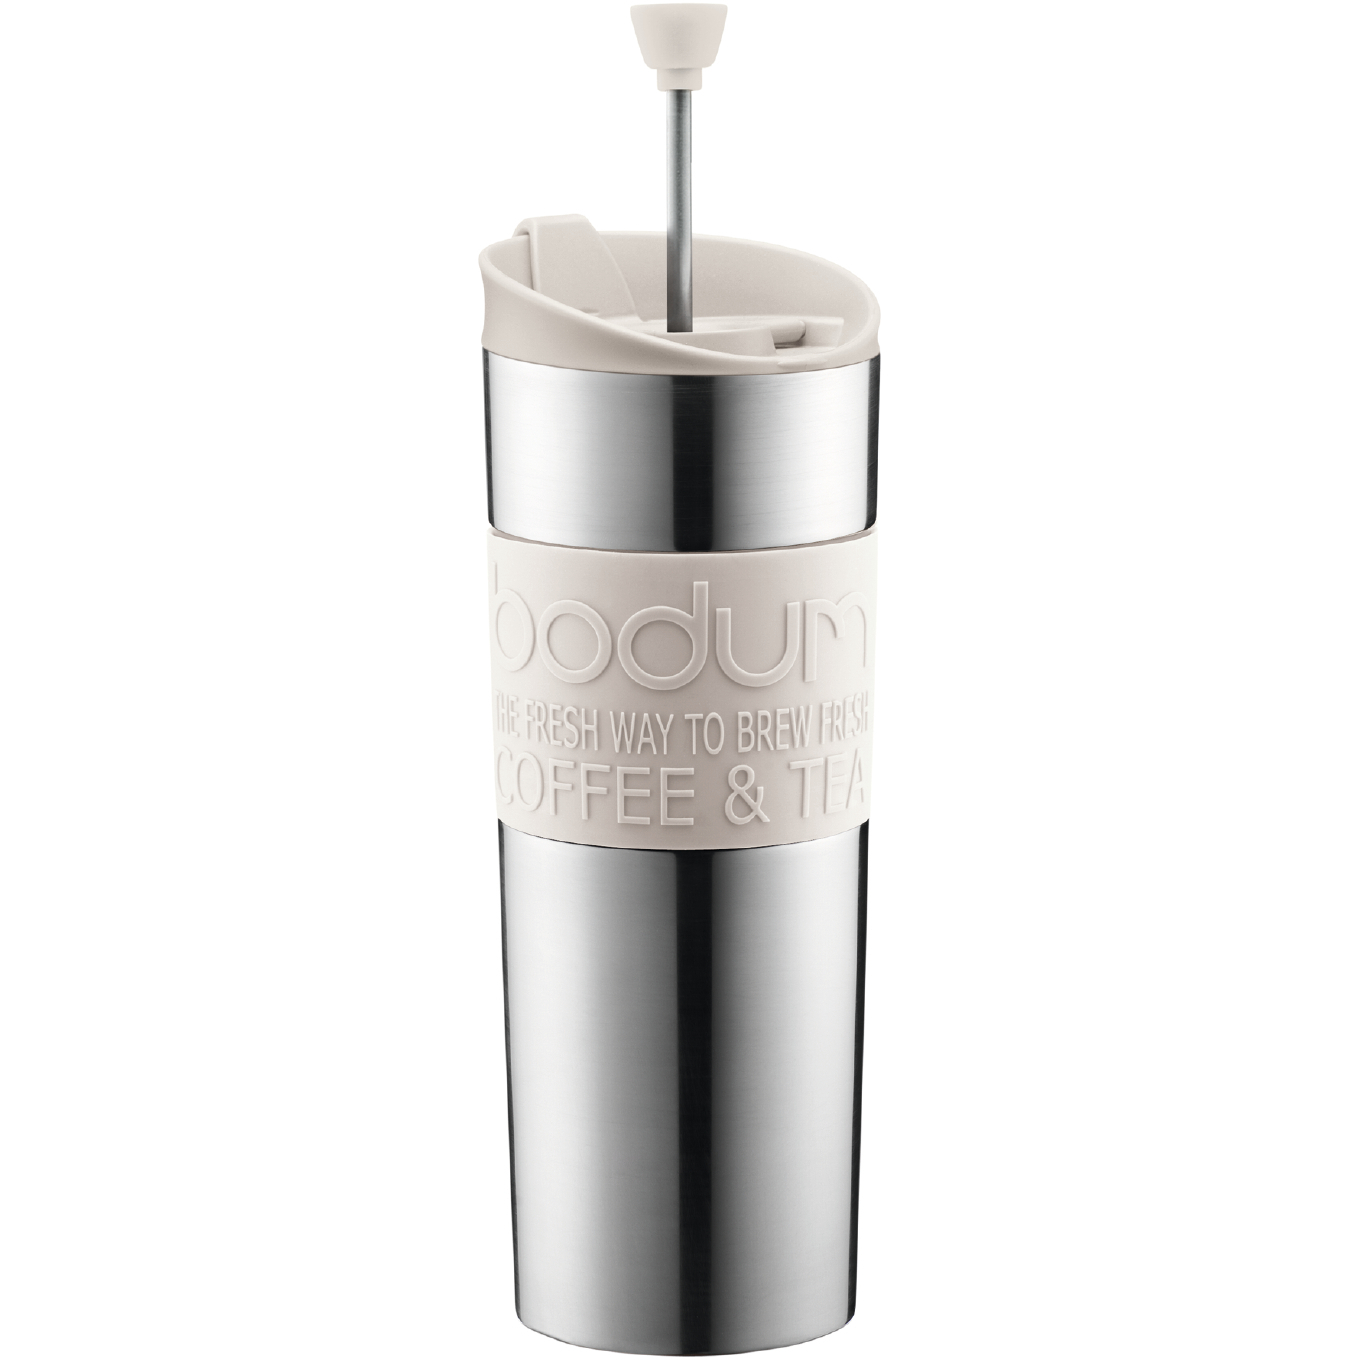 Bodum Insulated Stainless Steel Travel French Press with Off-White Accents, 15 Ounce